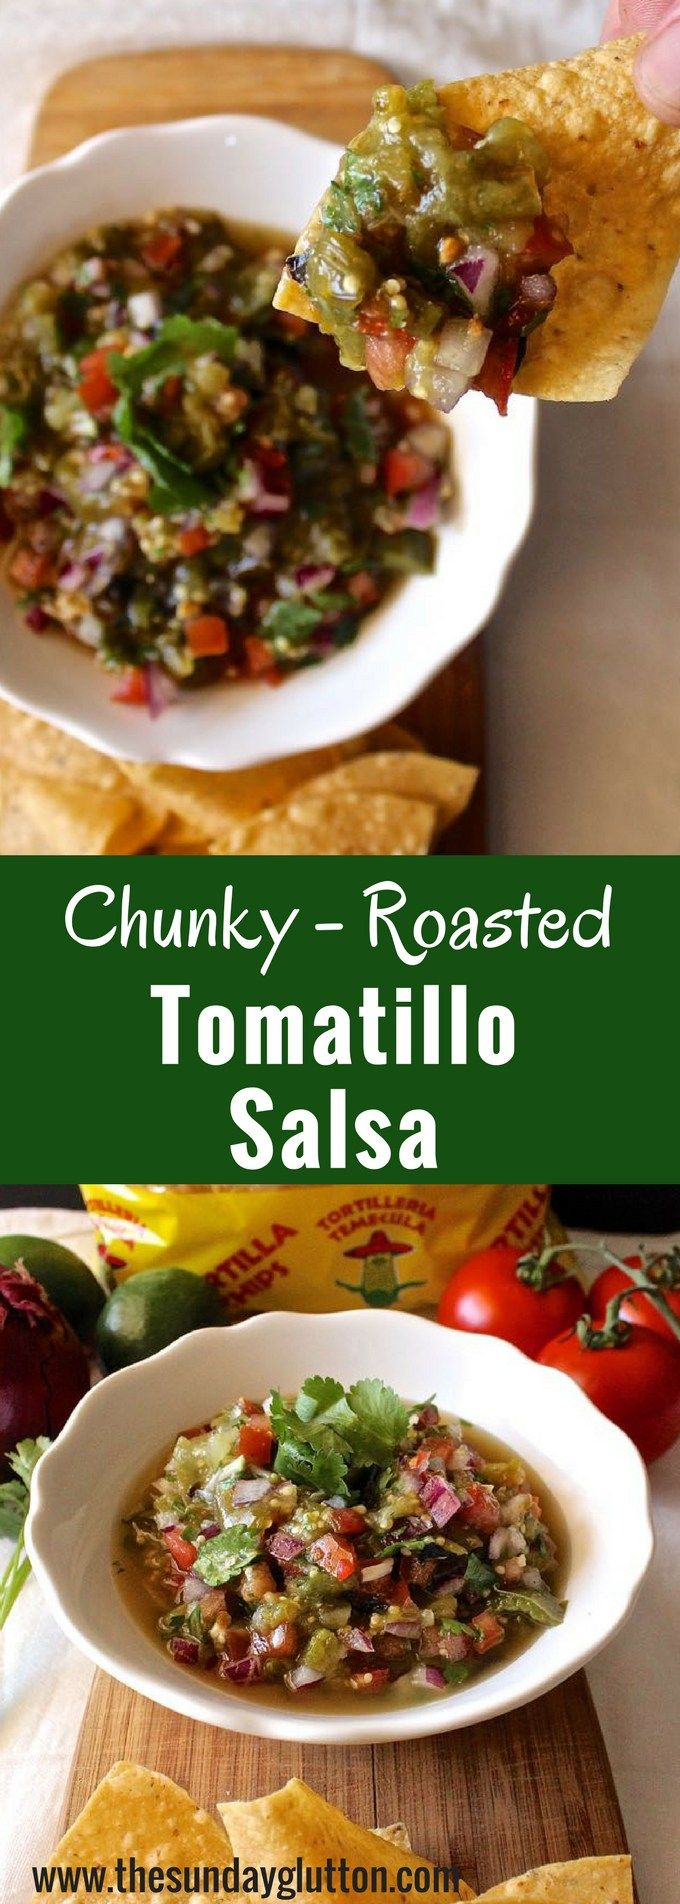 This Chunky Roasted Tomatillo Salsa is bright and acidic from the lime, a little sweet from the roasted tomatillos, and subtly spicy from the jalapeño.